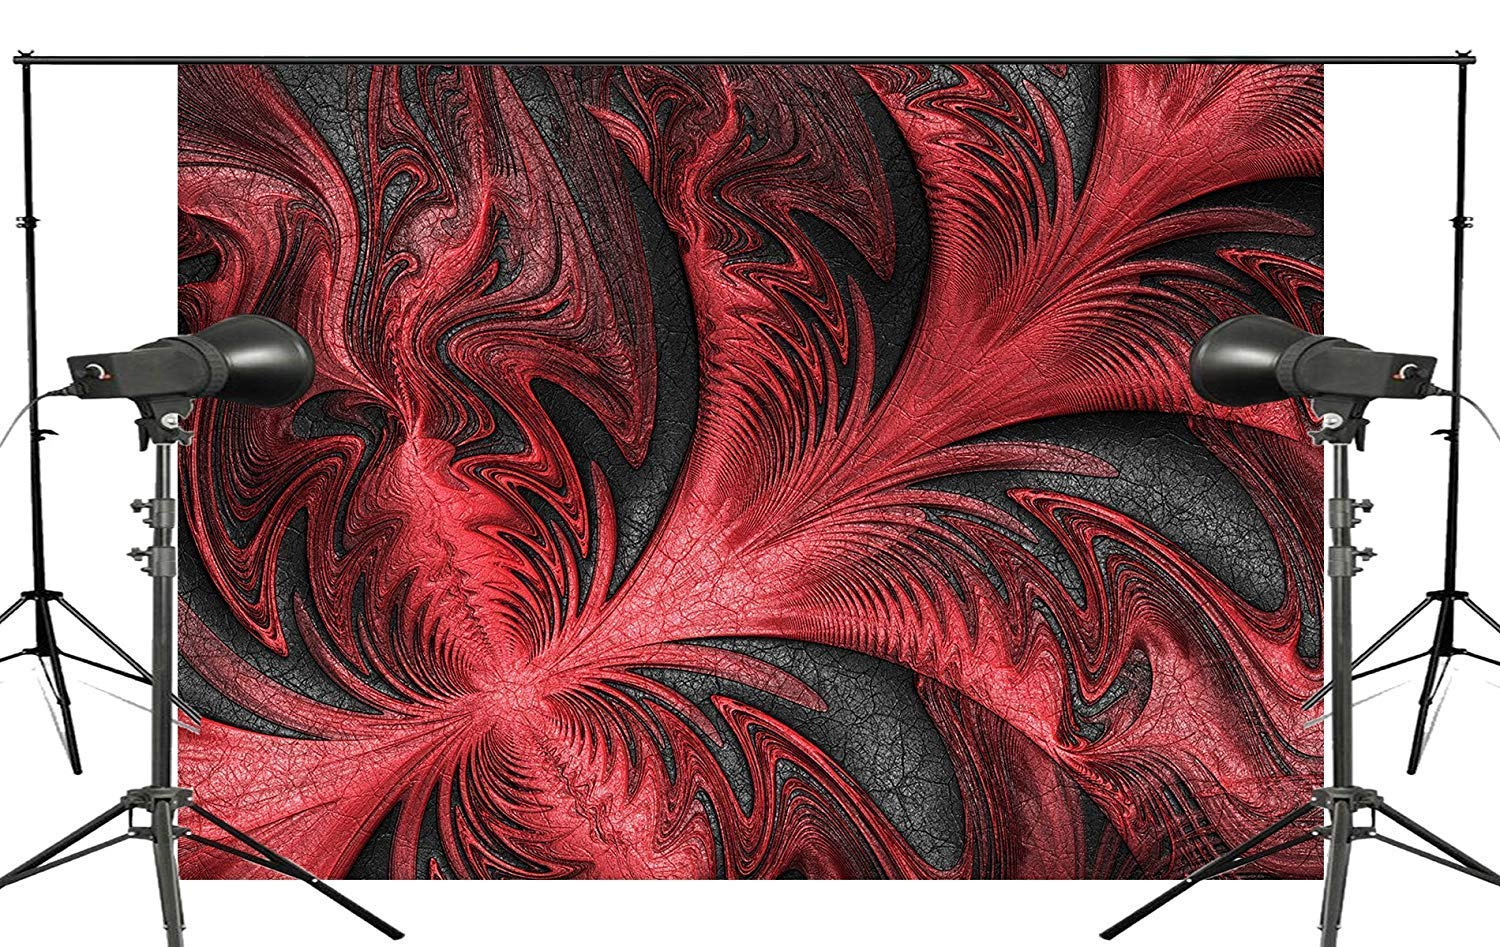 ERTIANANG Red Leaves Shape Background Abstract Black Backdrops Art Photo Studio Backdrop 150x210cm Photography Background Wall